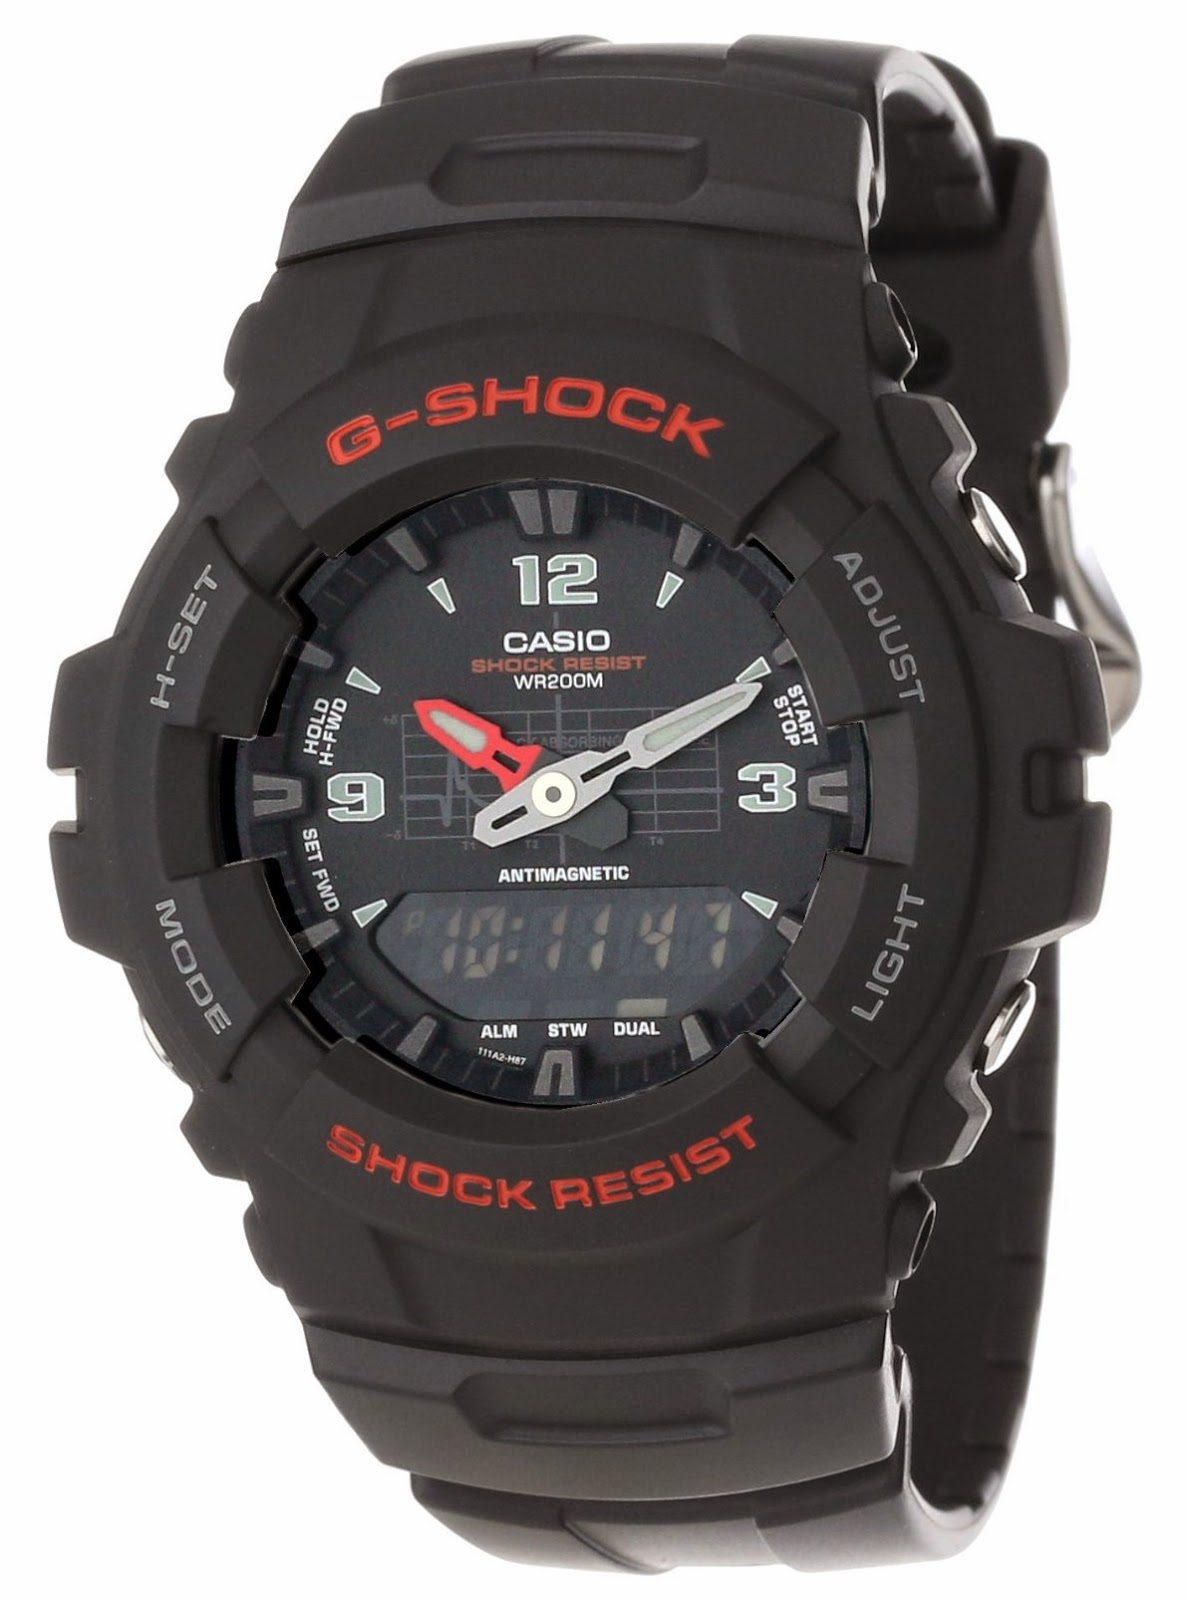 Casual Best Casio Watch Reviews G Shock Top Black Watches ...